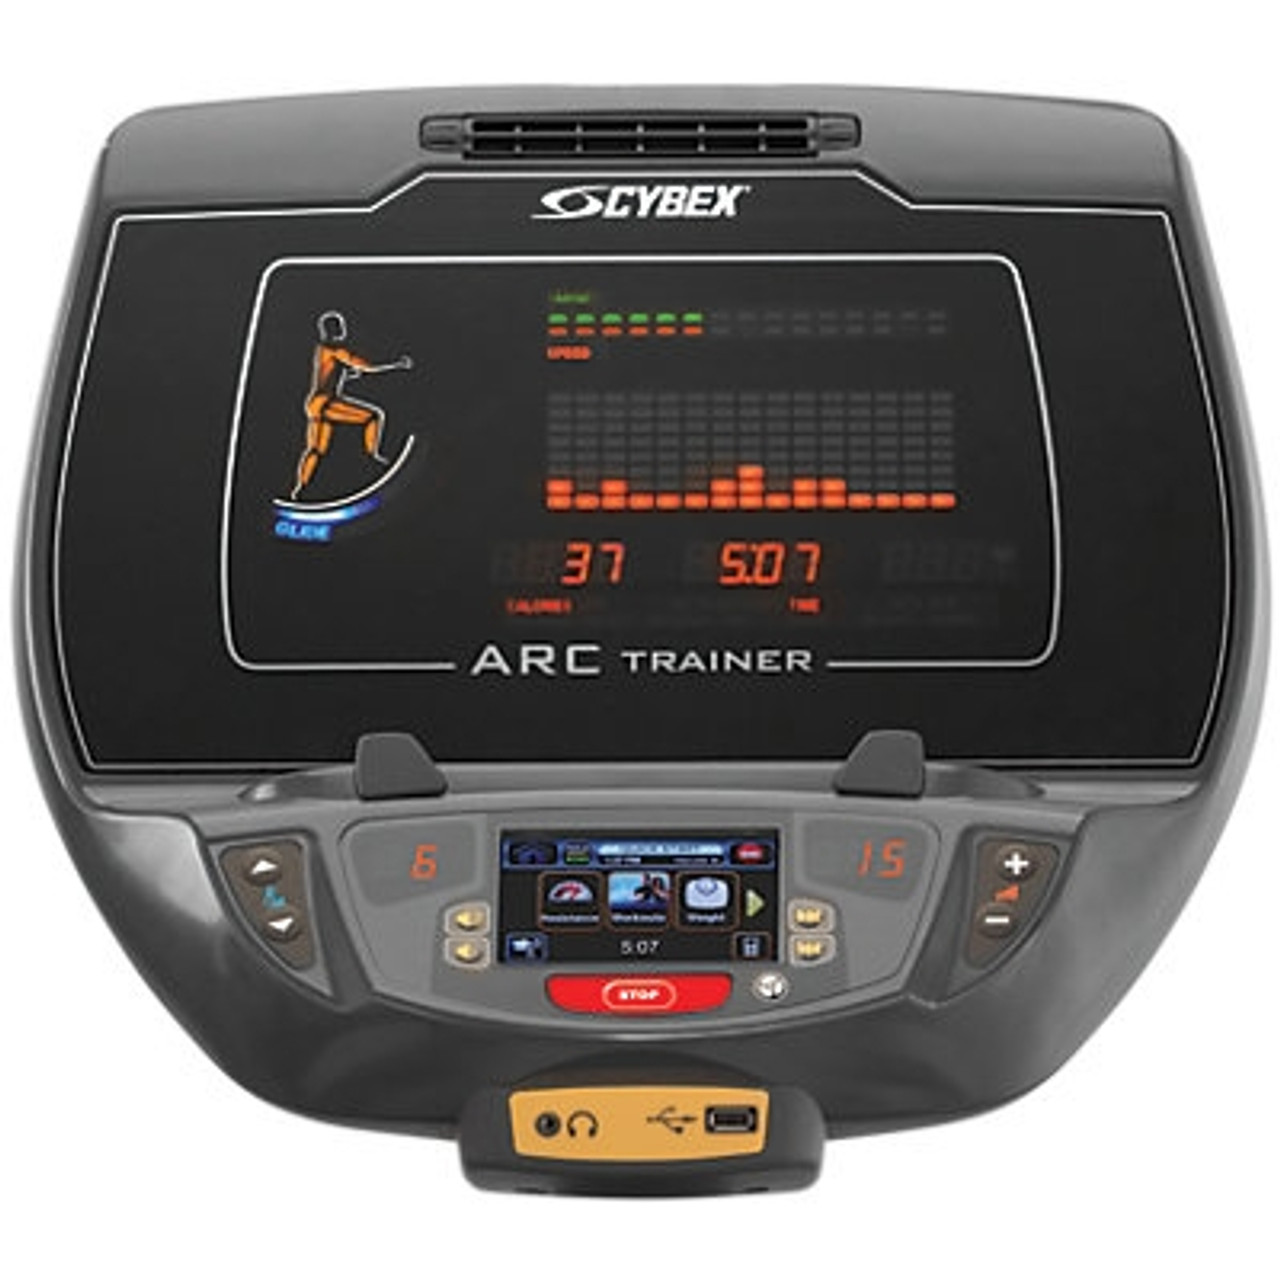 Cybex 770AT Total Body LED Console